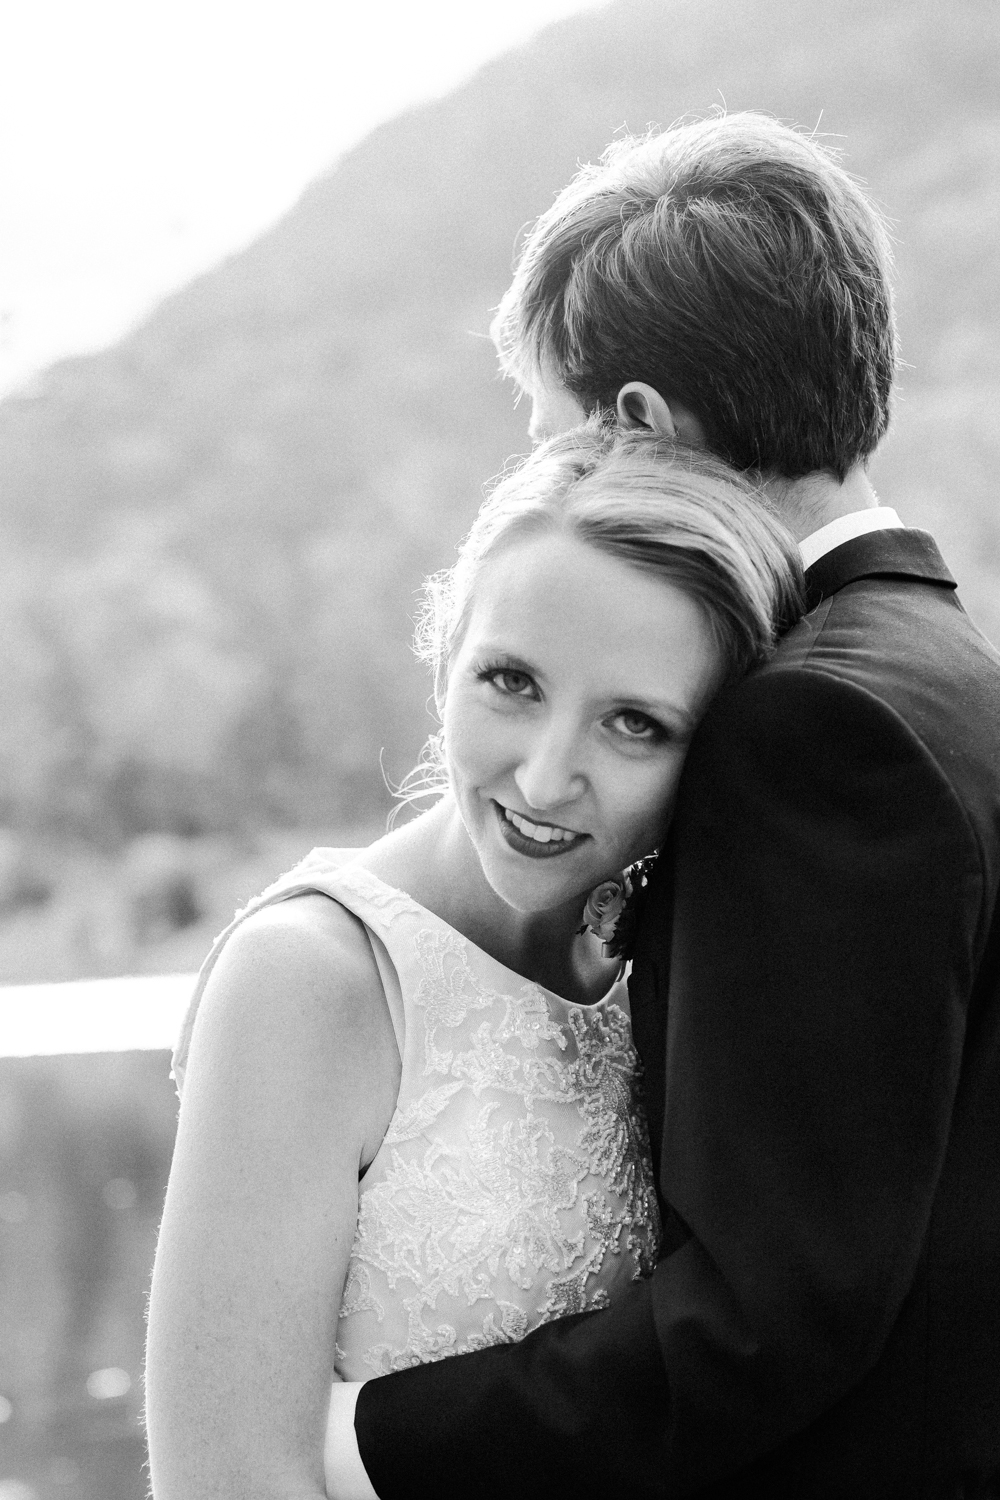 lissie_loomis_photo_nyc_brooklyn_wedding_engagement_photographer_photography-28.JPG